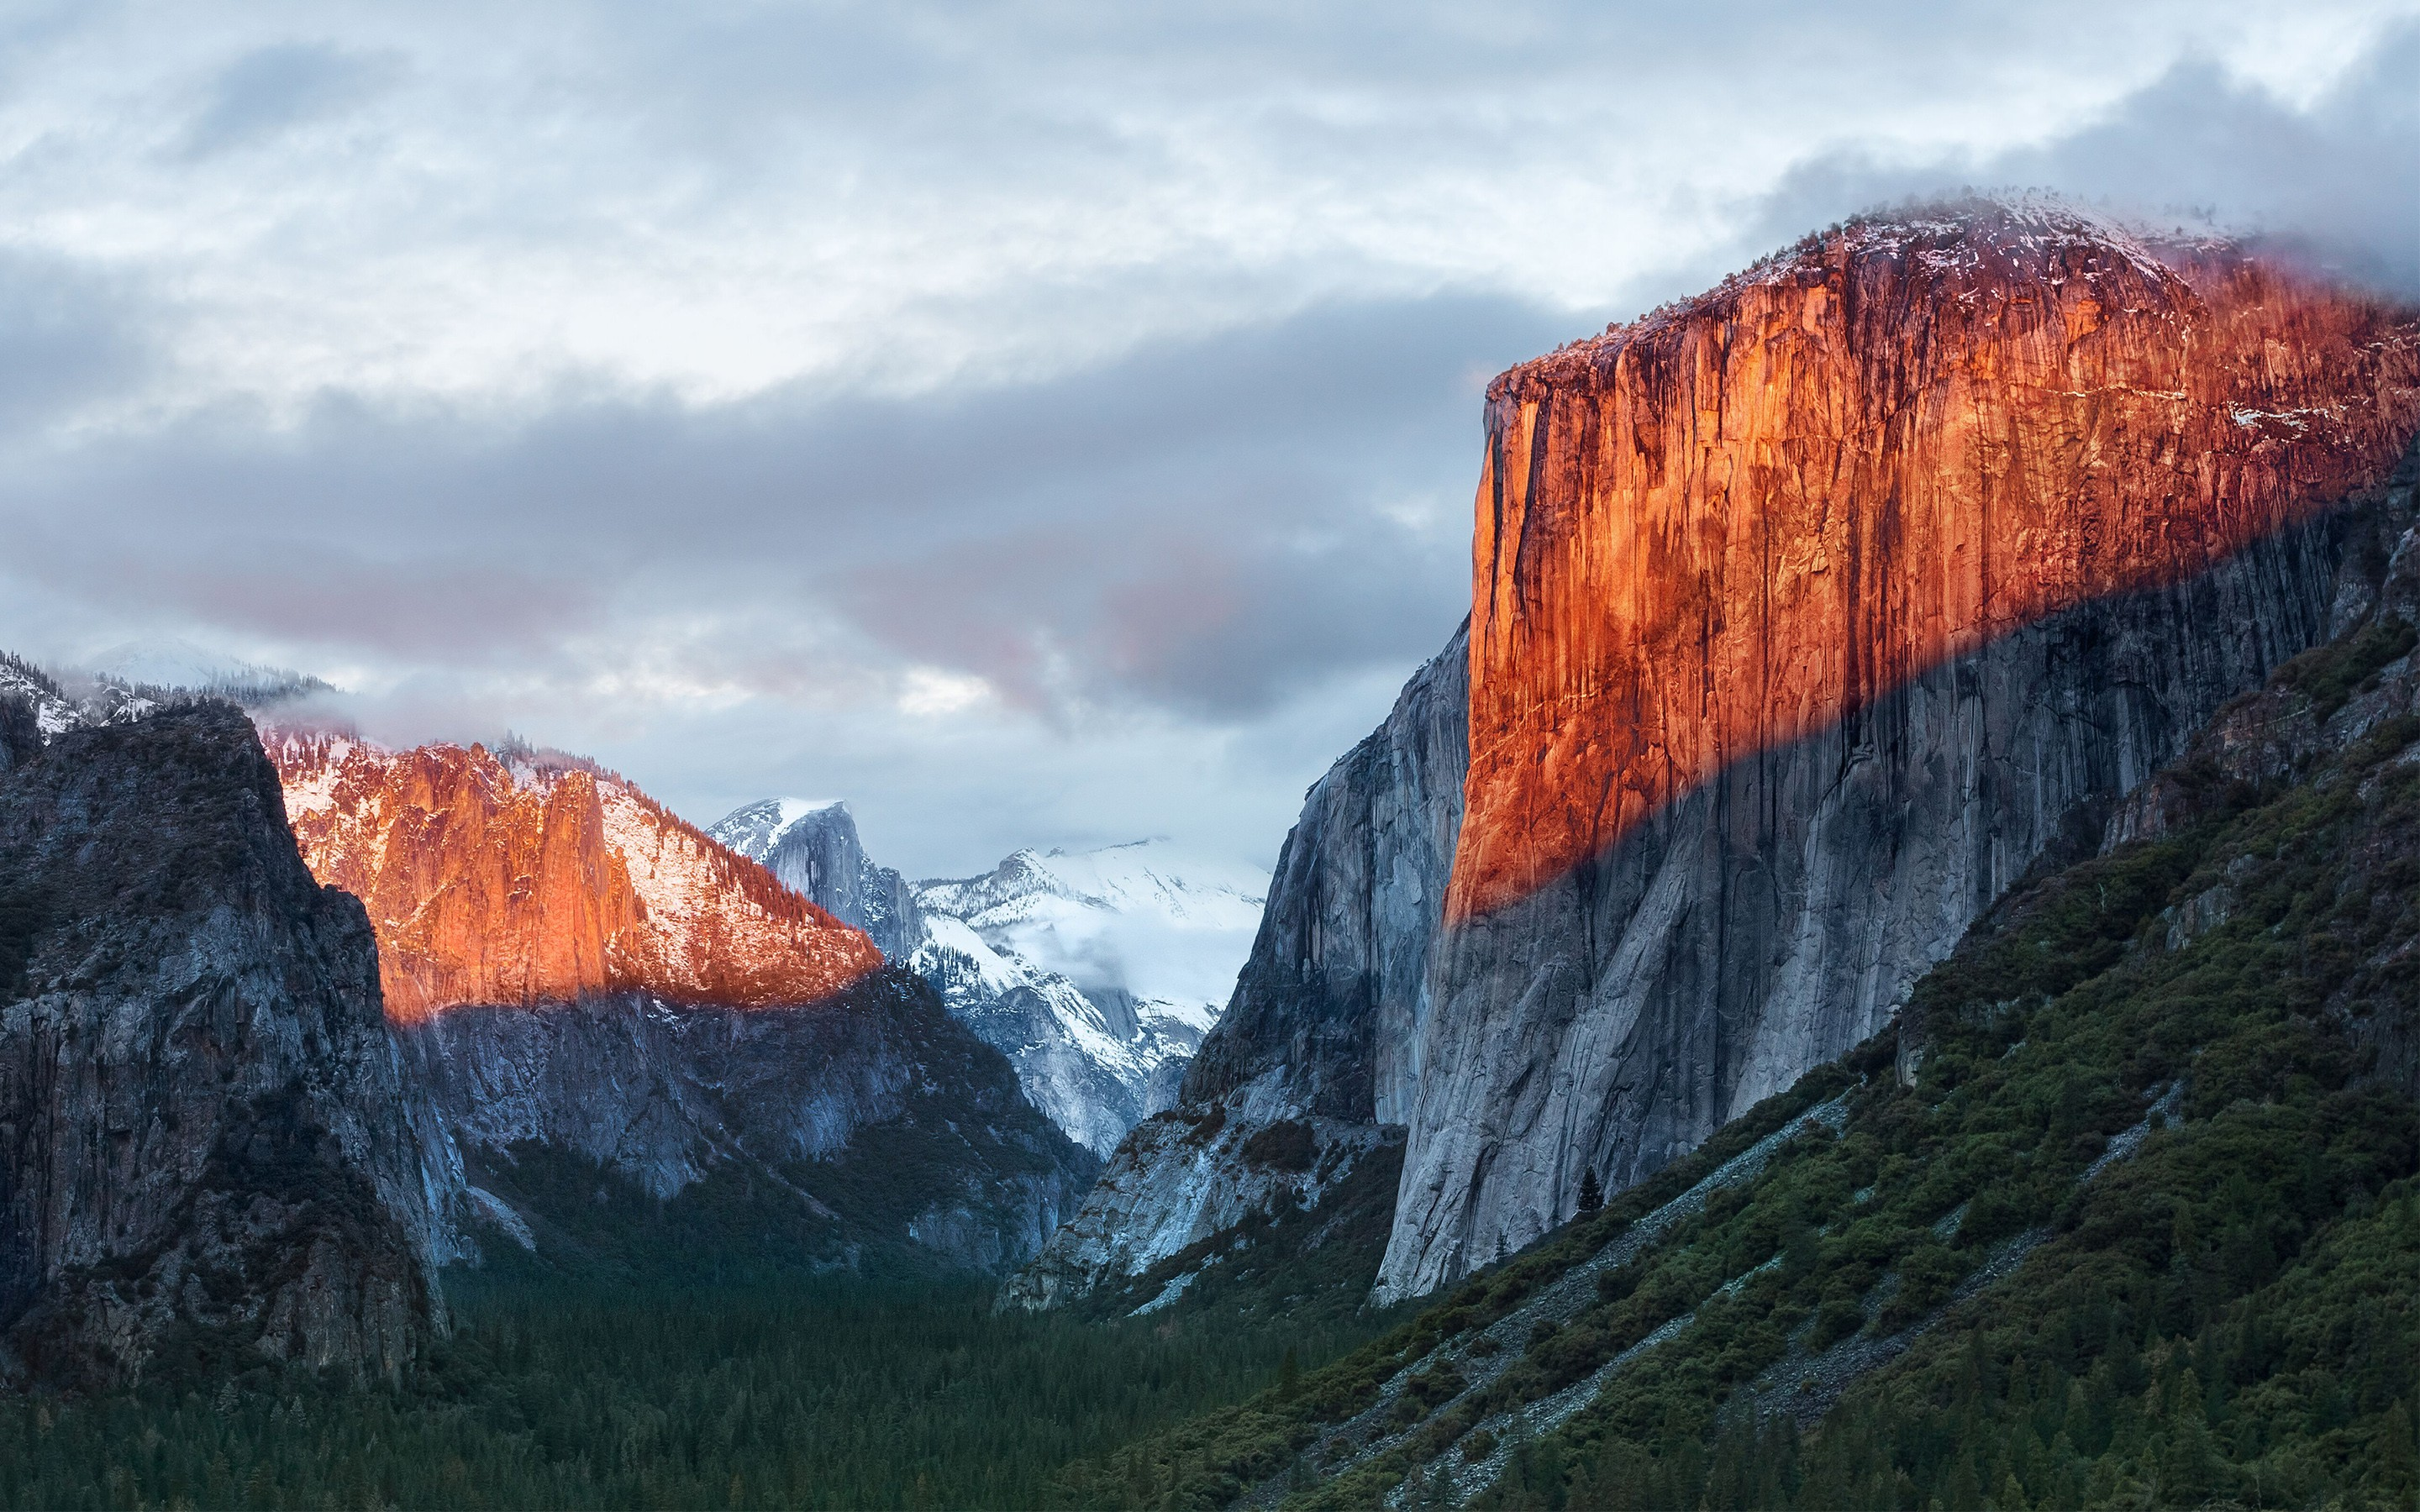 Mac Osx Captain Original Mac Os El Capitan Wallpaper 4k